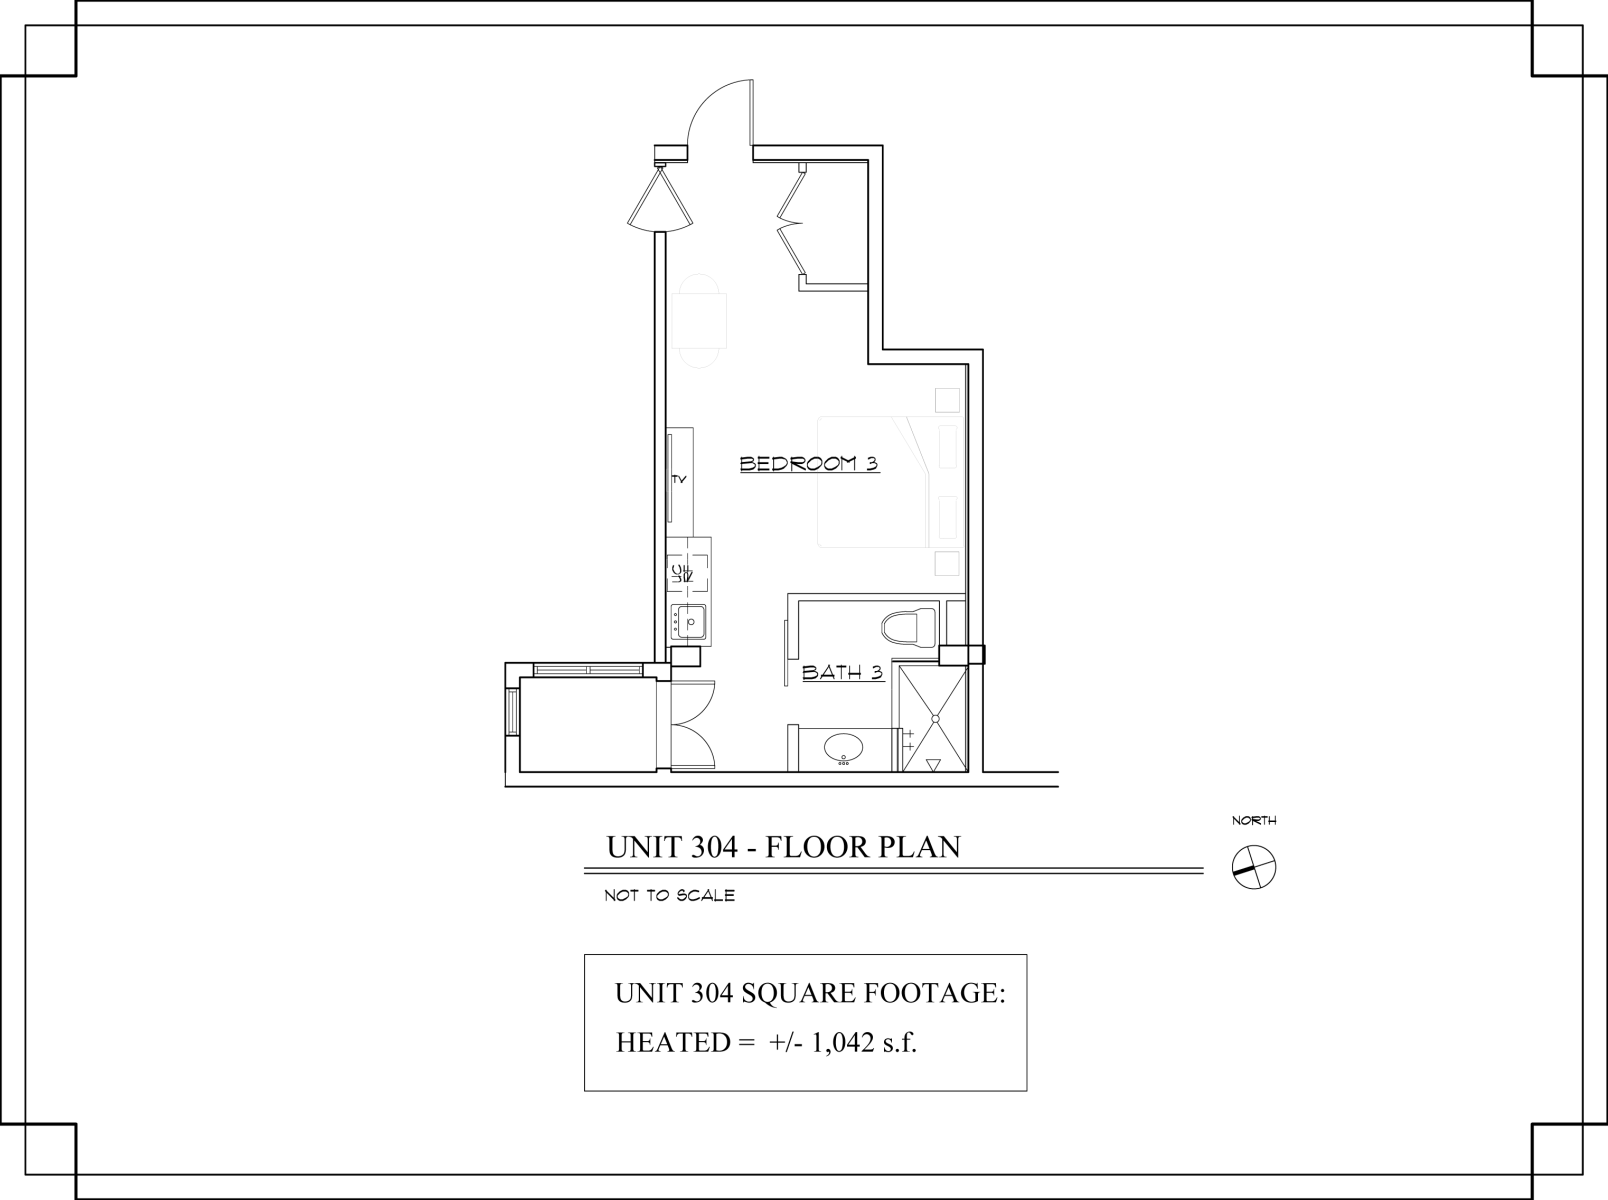 Floor Plan for The Lincoln 304-1 Bed, 1 Bath Efficiency Studio